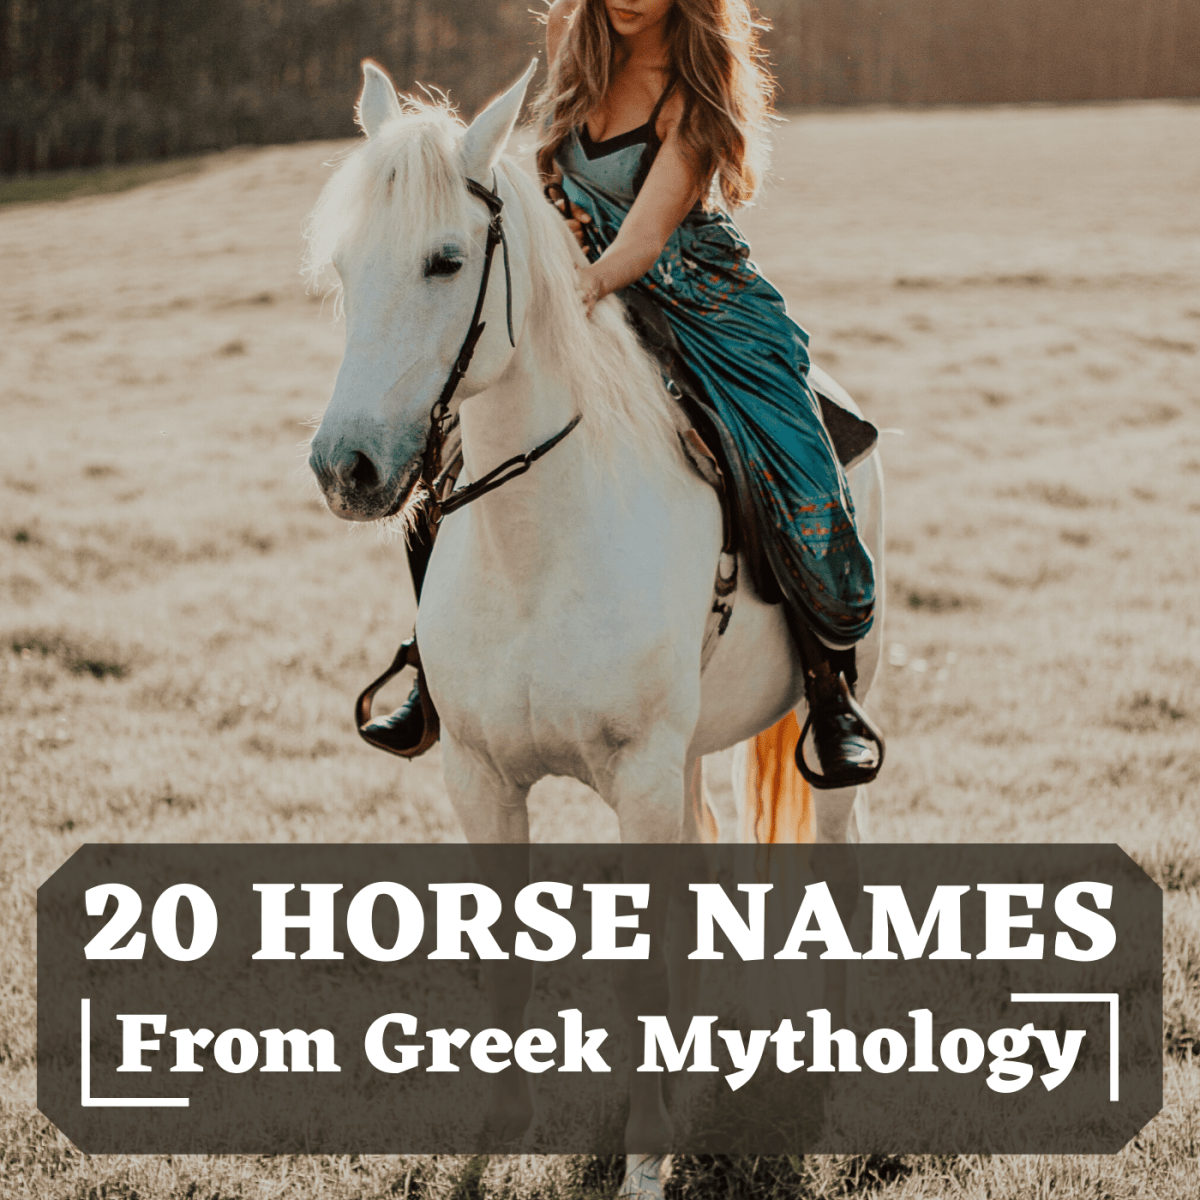 20 Legendary Names For Horses From Greek Mythology Pethelpful By Fellow Animal Lovers And Experts